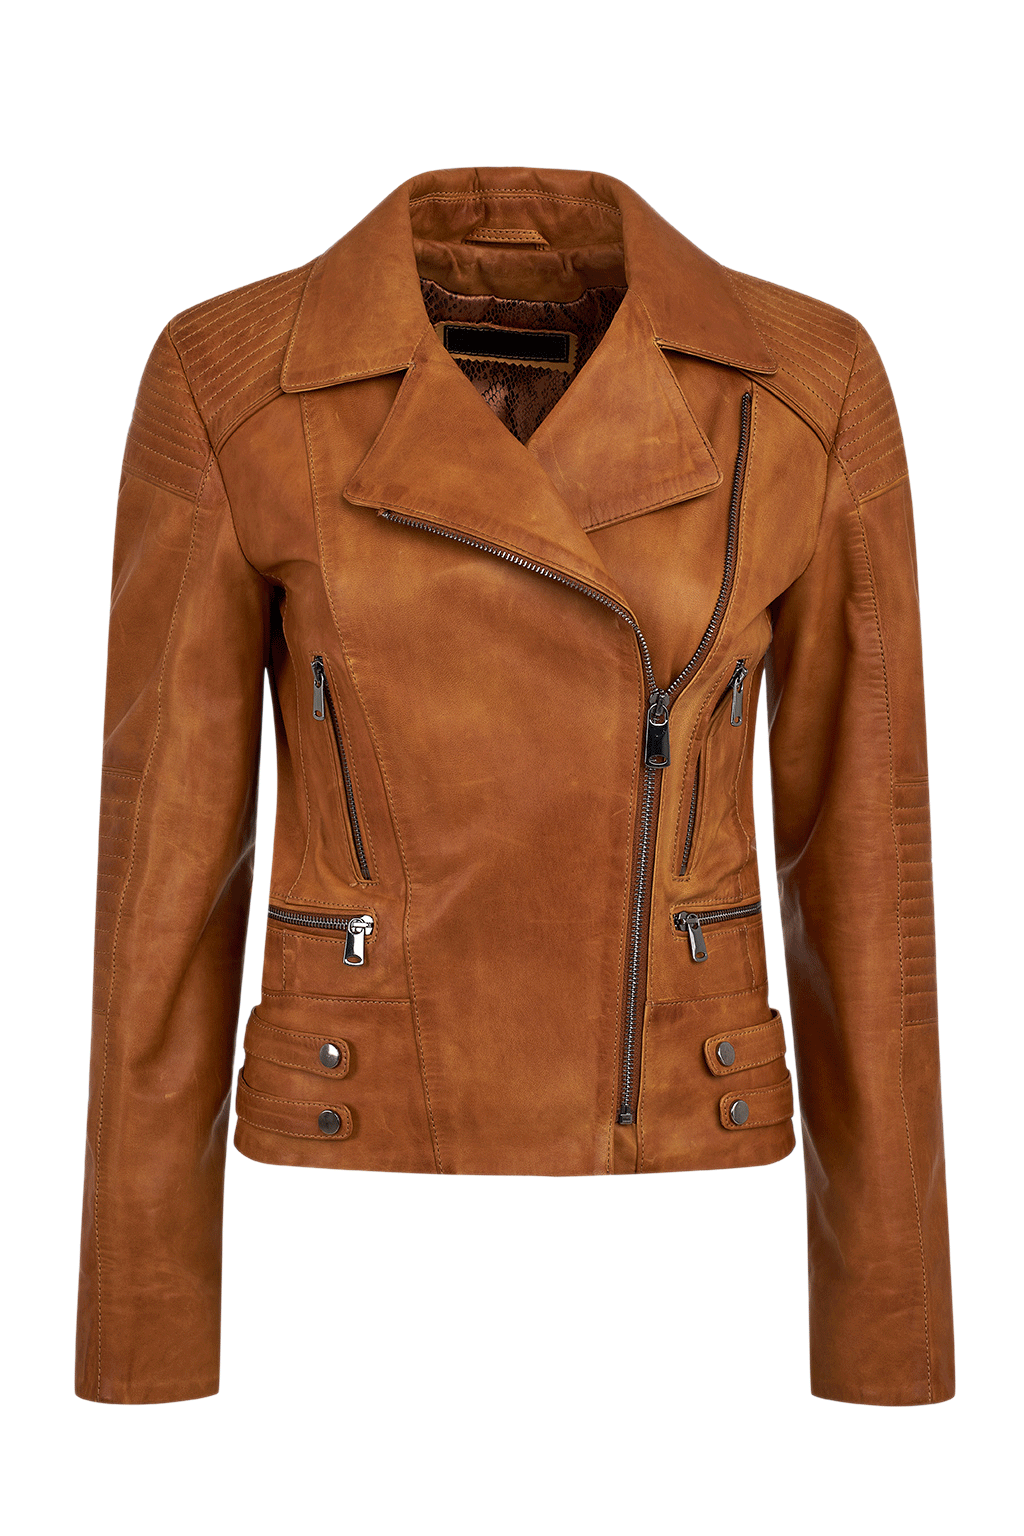 Women's Leather Motorcycle Jacket - Brown